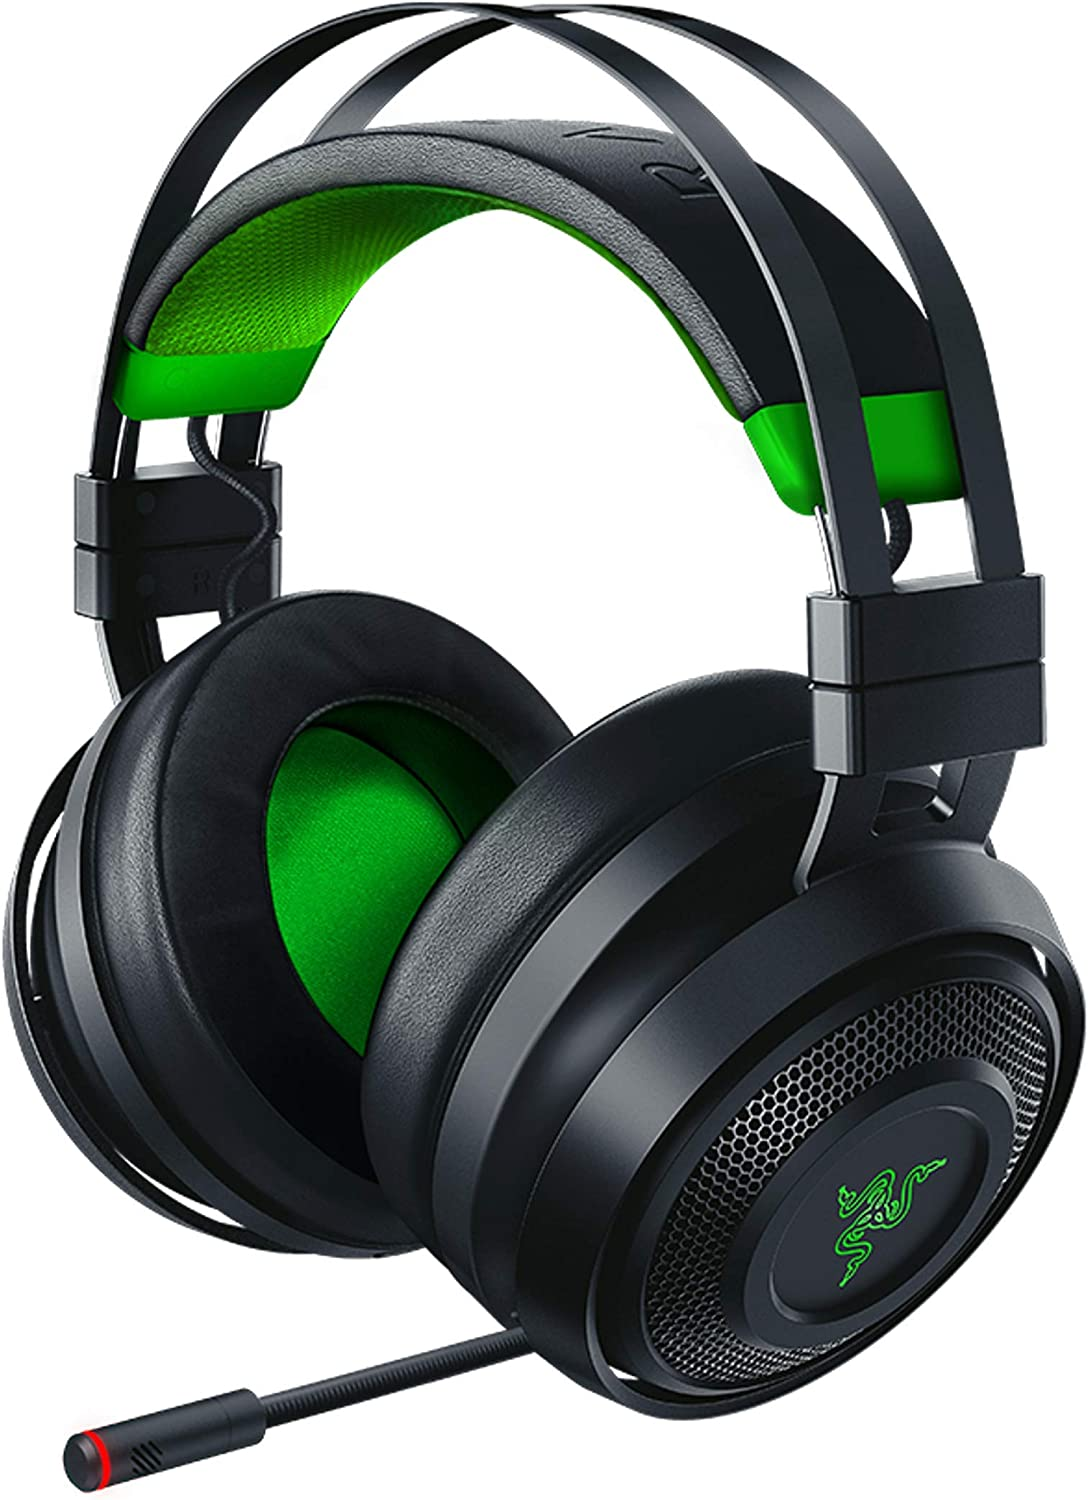 Razer Nari Ultimate for-Xbox One Wireless 7.1 Surround Sound Gaming Headset: Hypersense Haptic Feedback - Auto-Adjust Headband - Green Lighting - Retractable Mic - For-Xbox One - Classic Black/Green